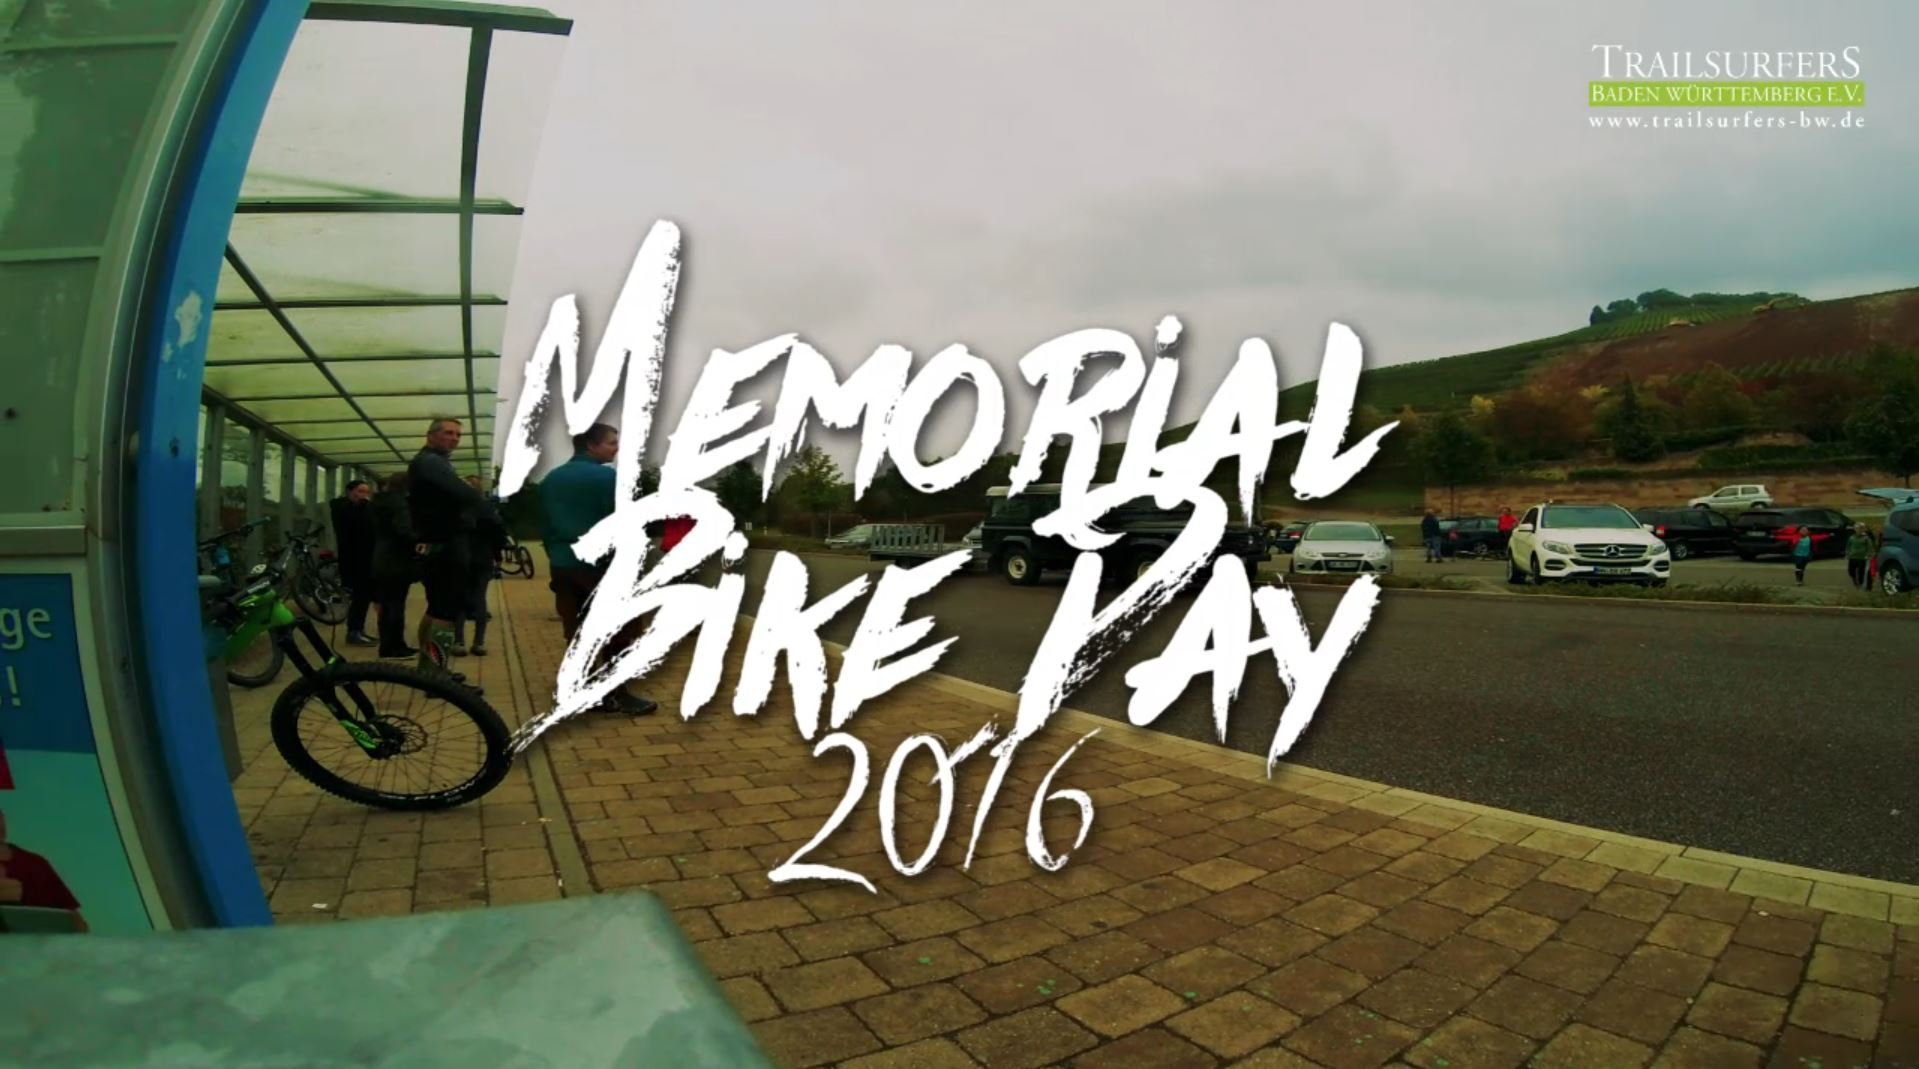 Trailer Review Memorial Bike Day 2016